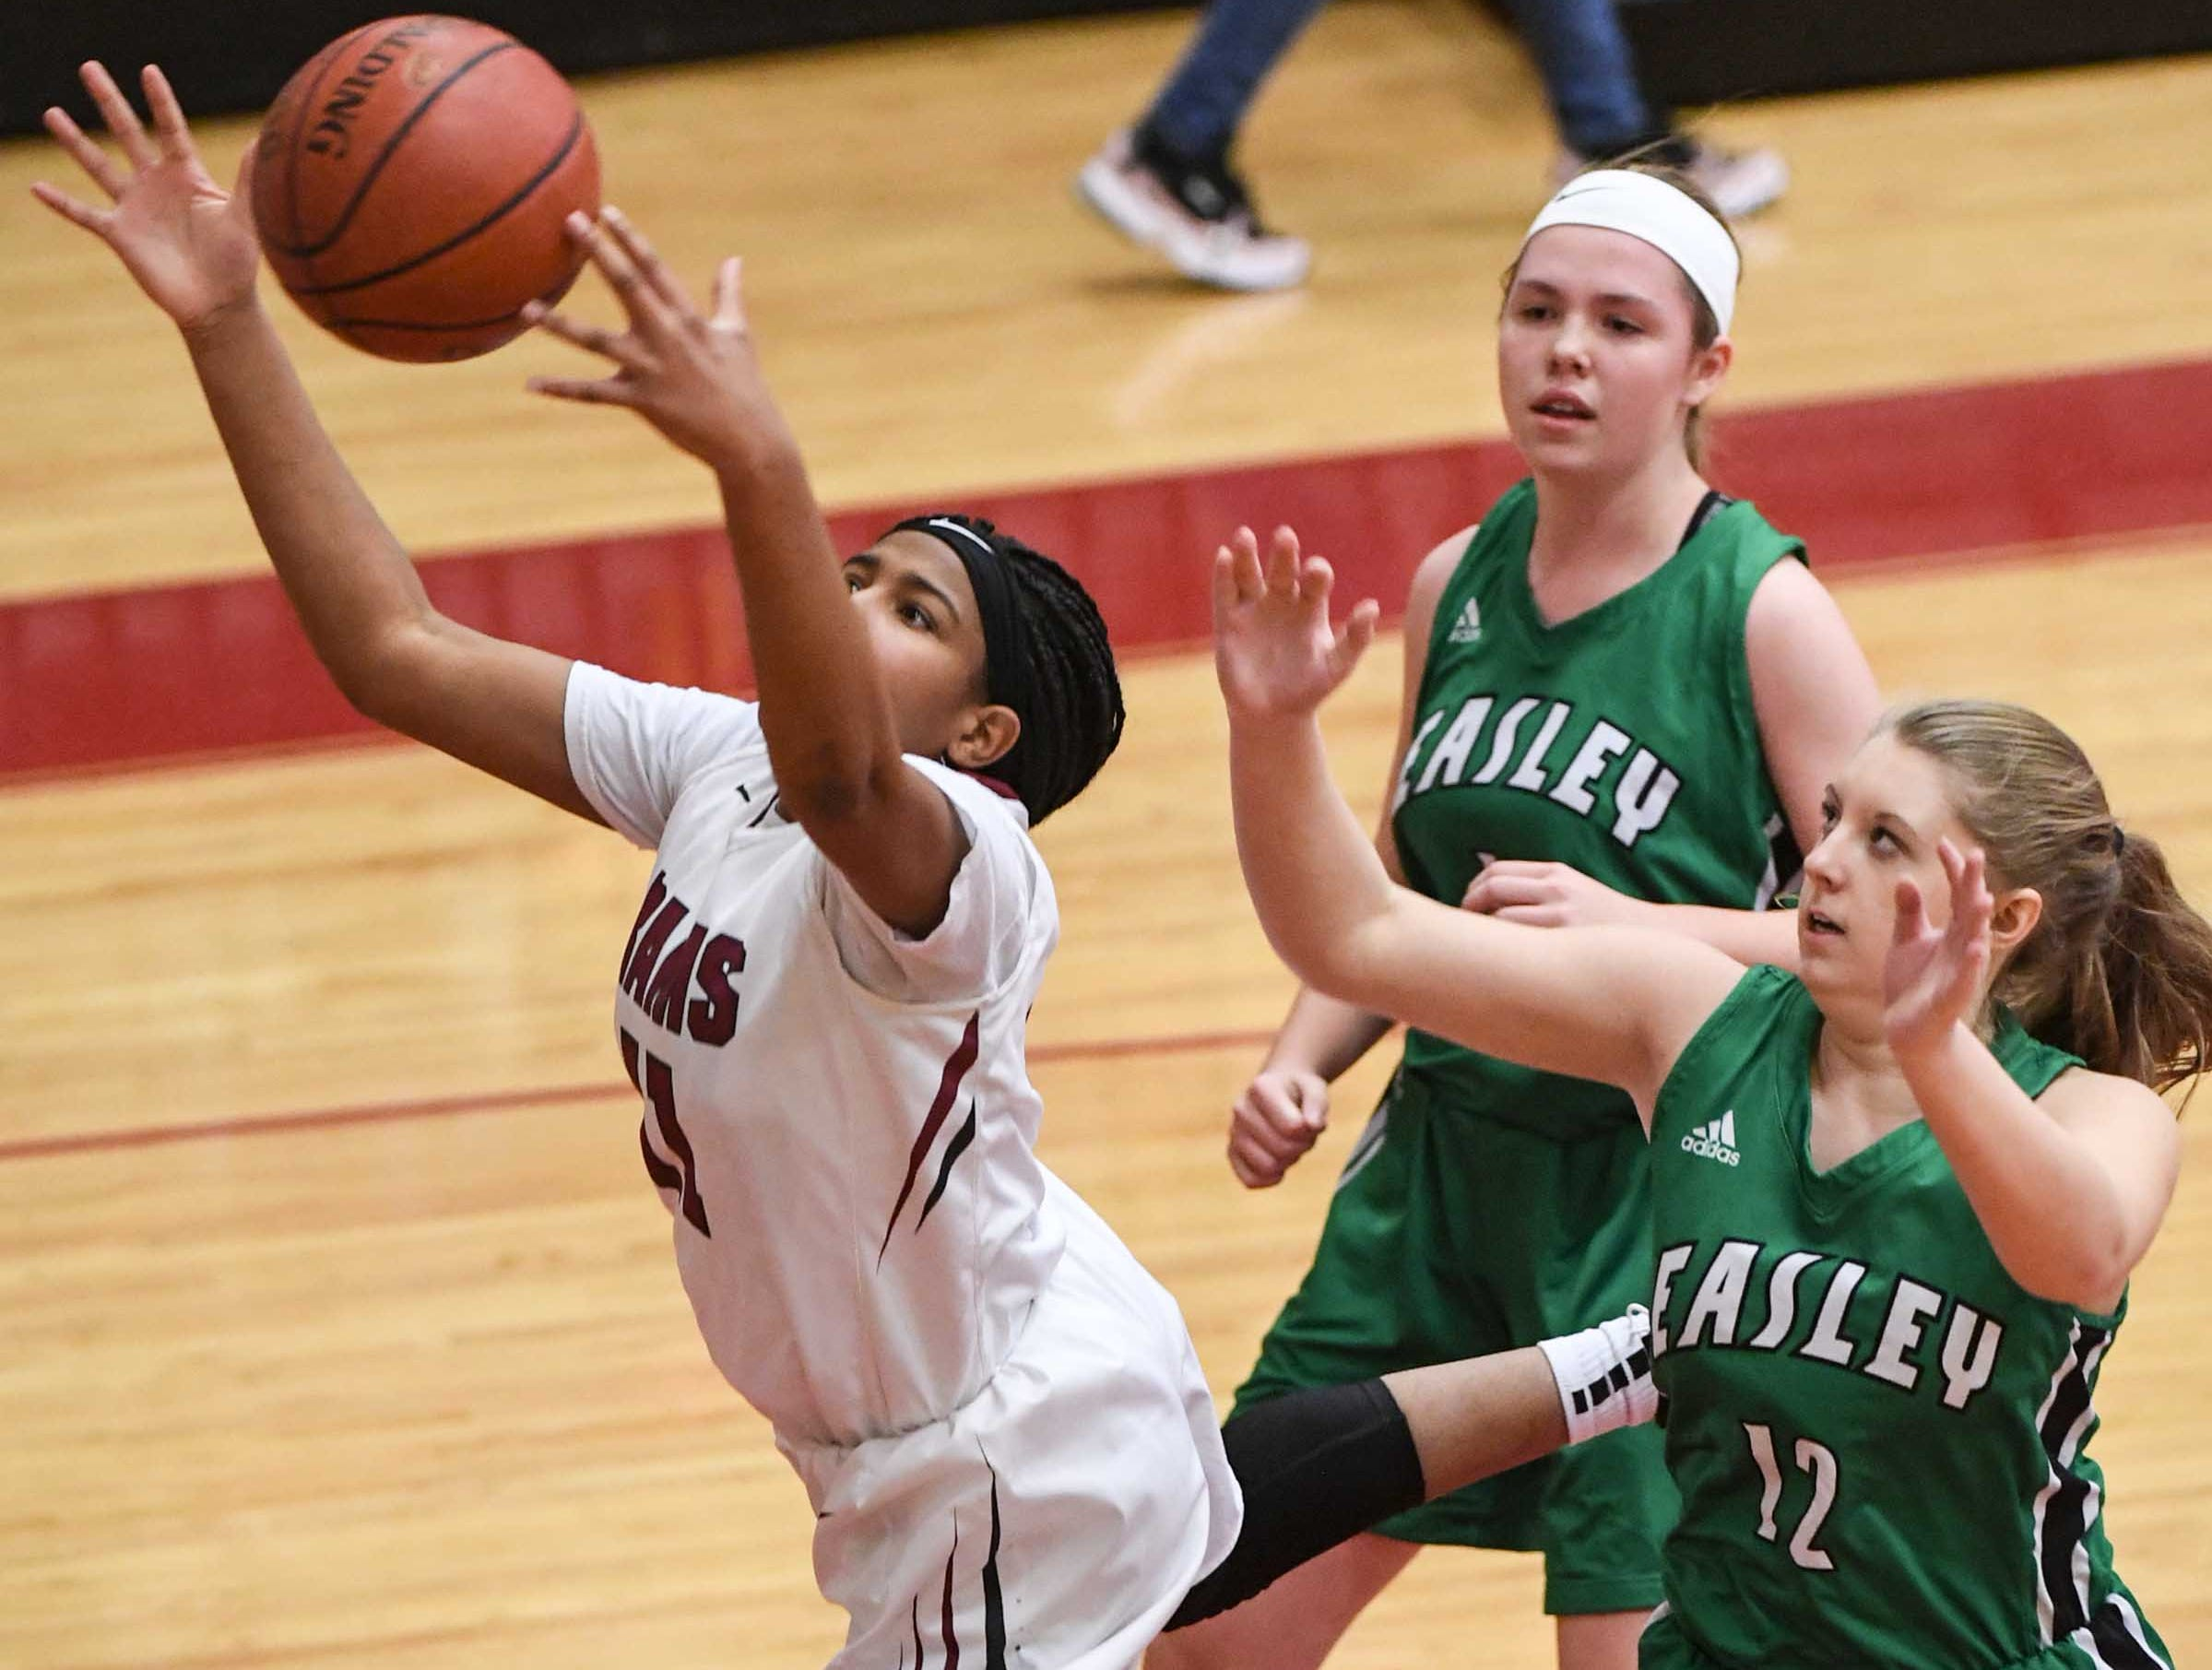 Westside freshman Destiny Middleton(11) reaches for a ball near Easley sophomore Rachel Fuller(12) during the third quarter at Westside High School in Anderson on Friday.